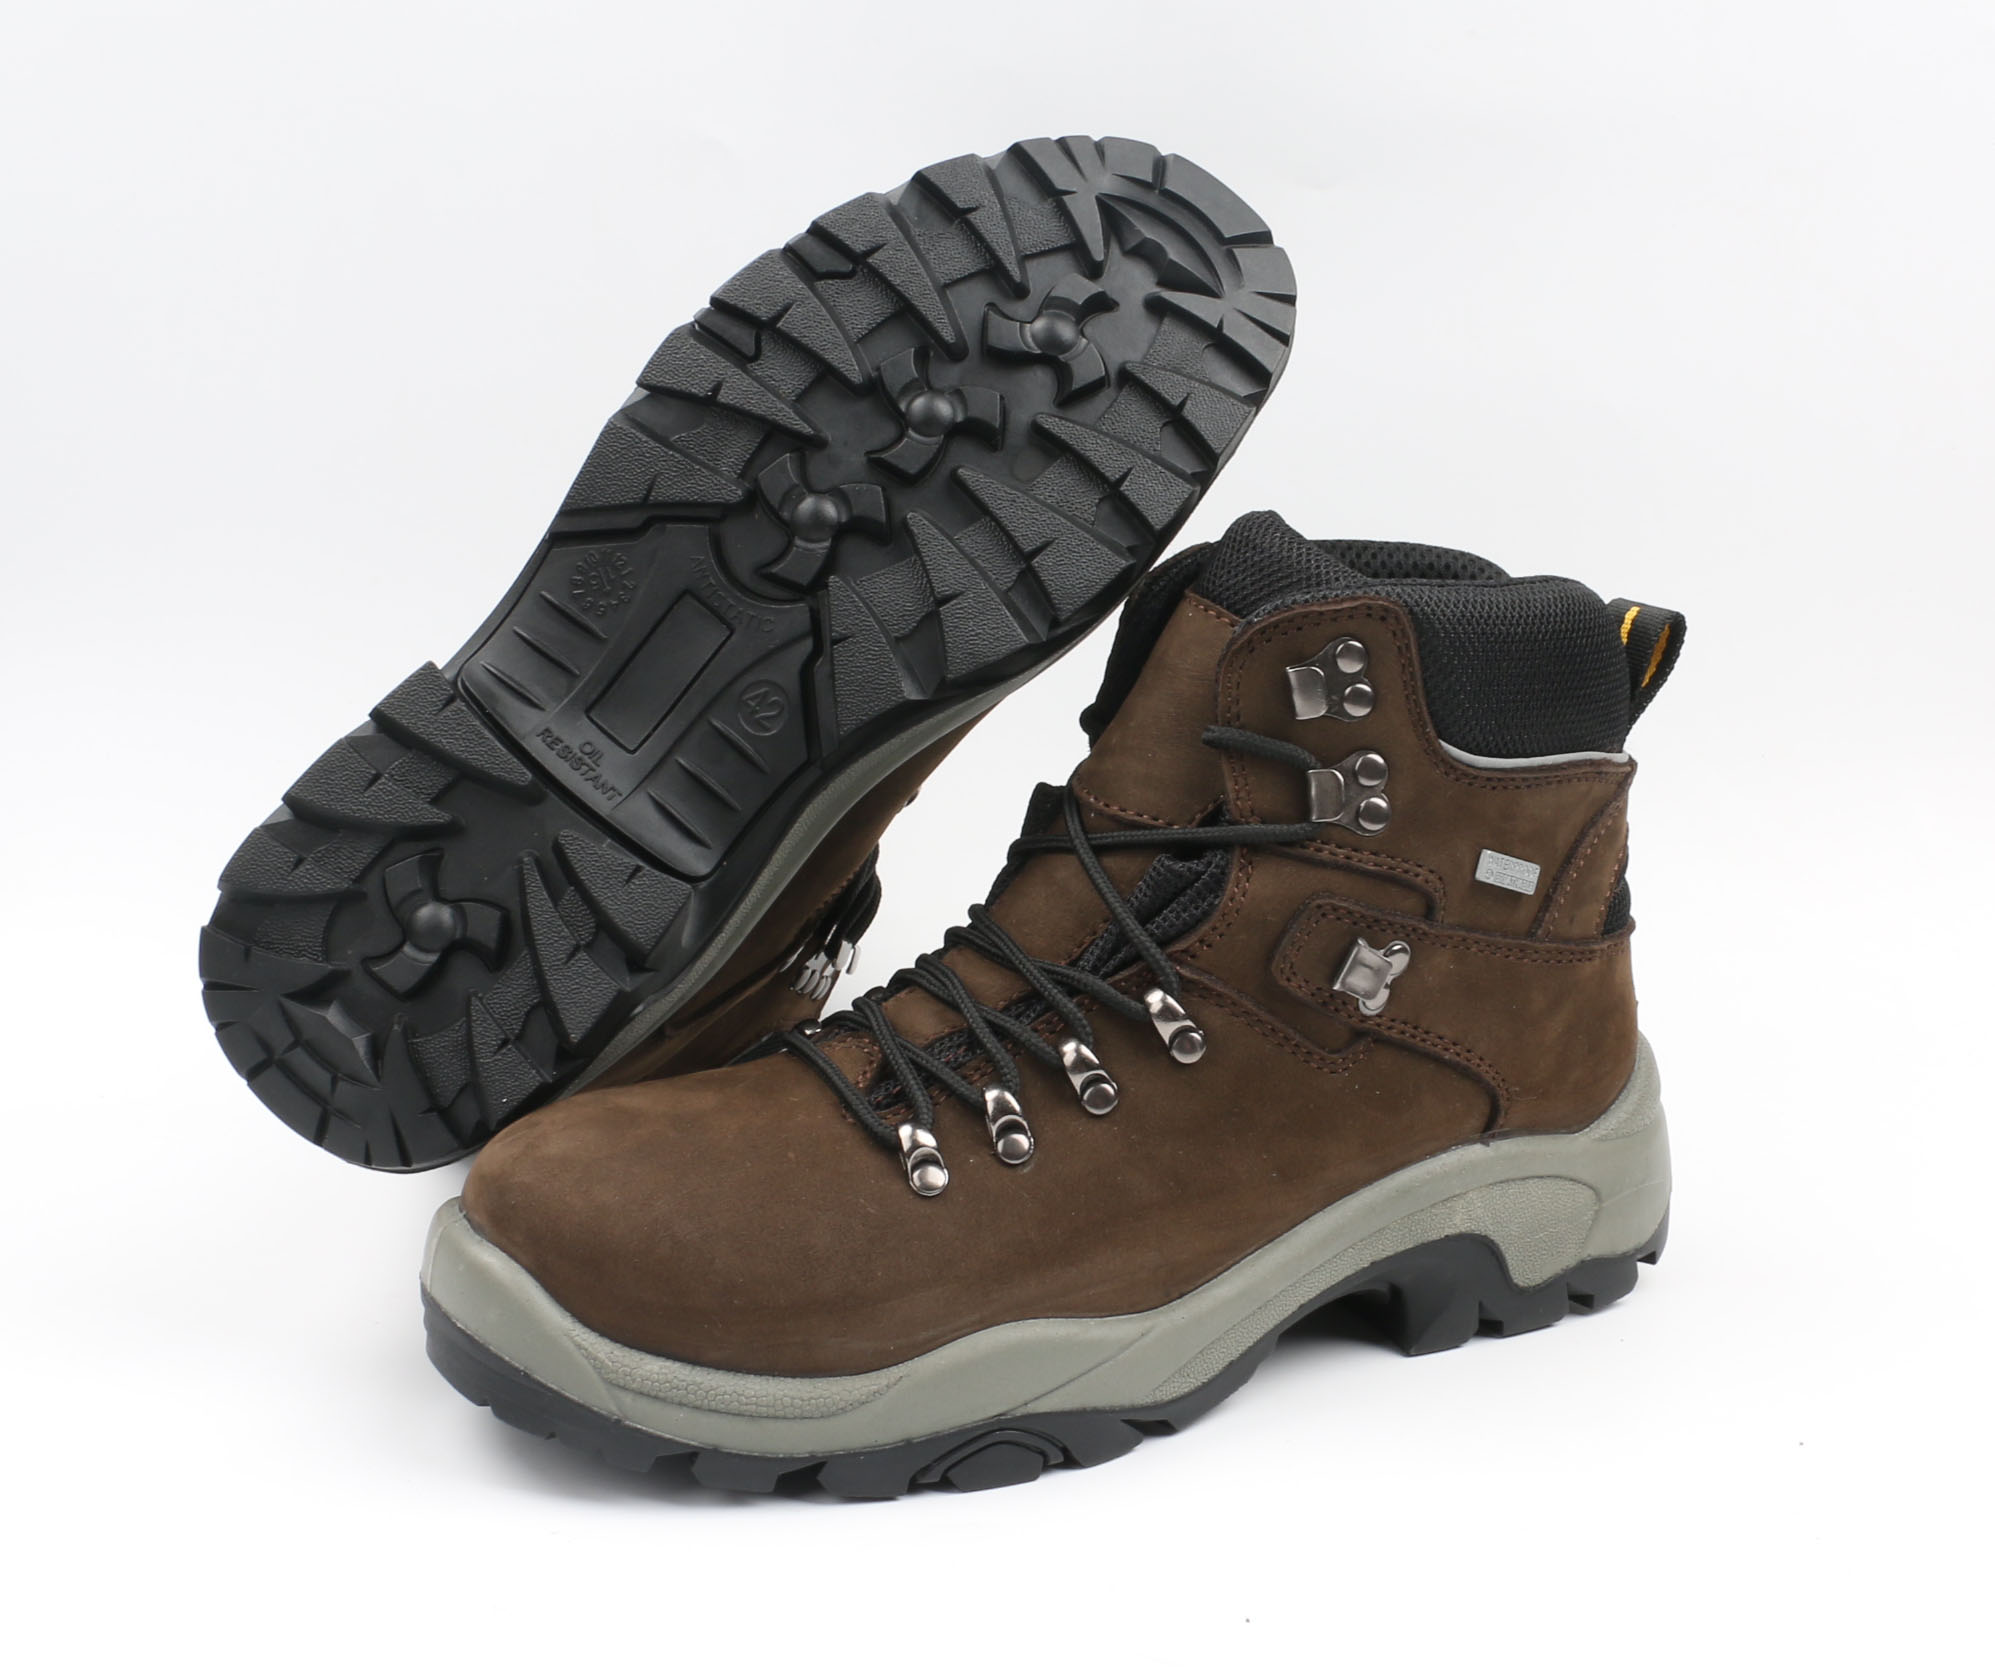 Stocklot Low Price Industrial Electrical Casual Safety Shoes European - Buy  Casual Safety Shoes European,Low Price Industrial Electrical Safety